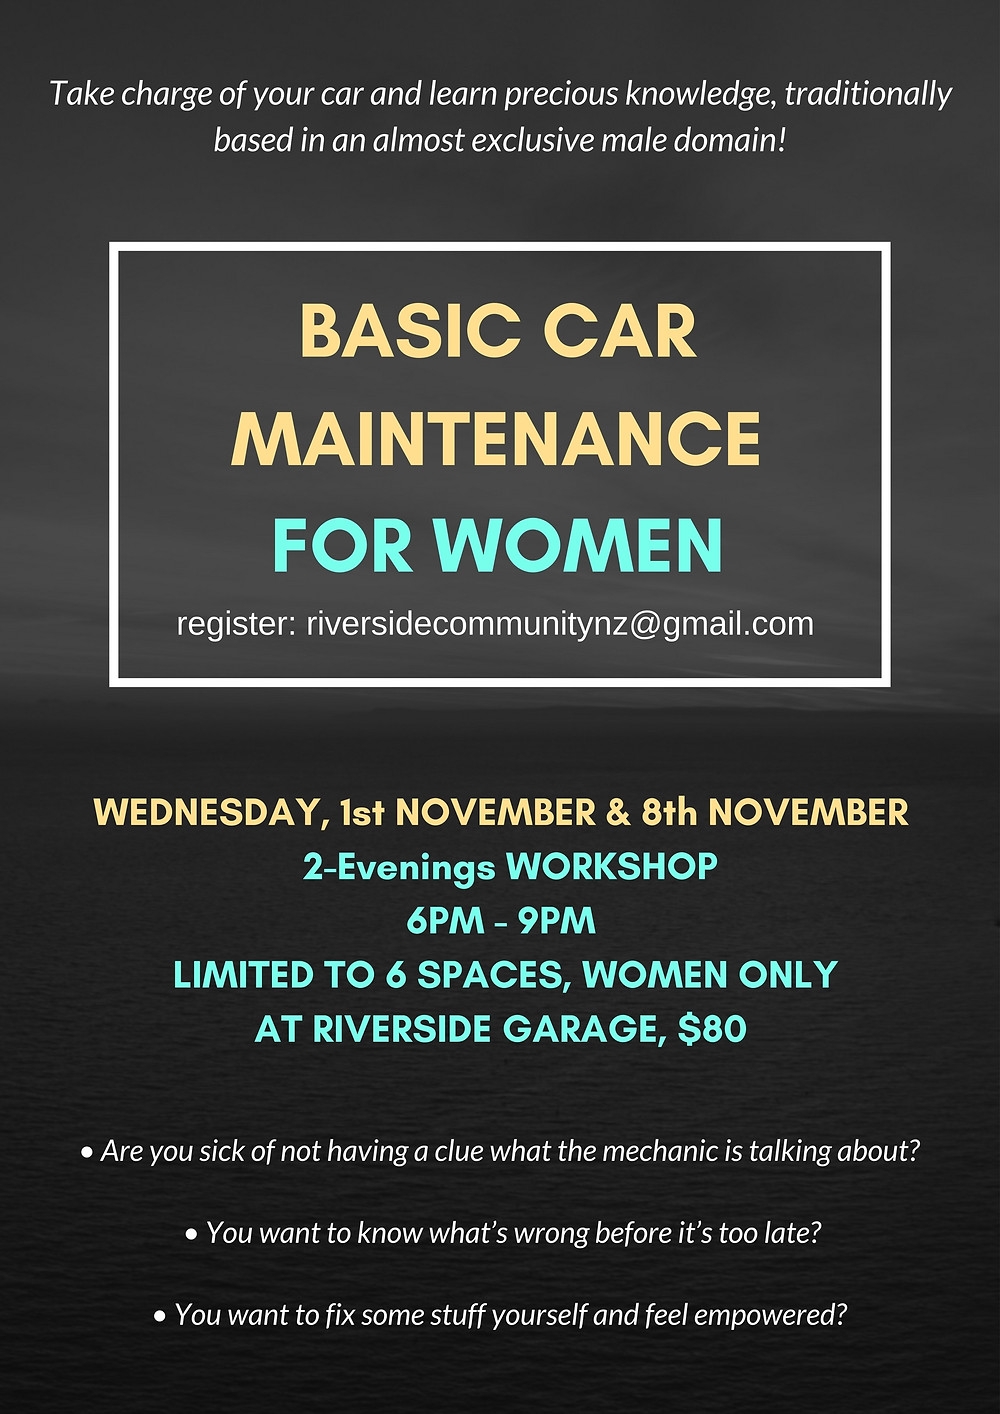 Poster for Car Maintenance Workshop for Women